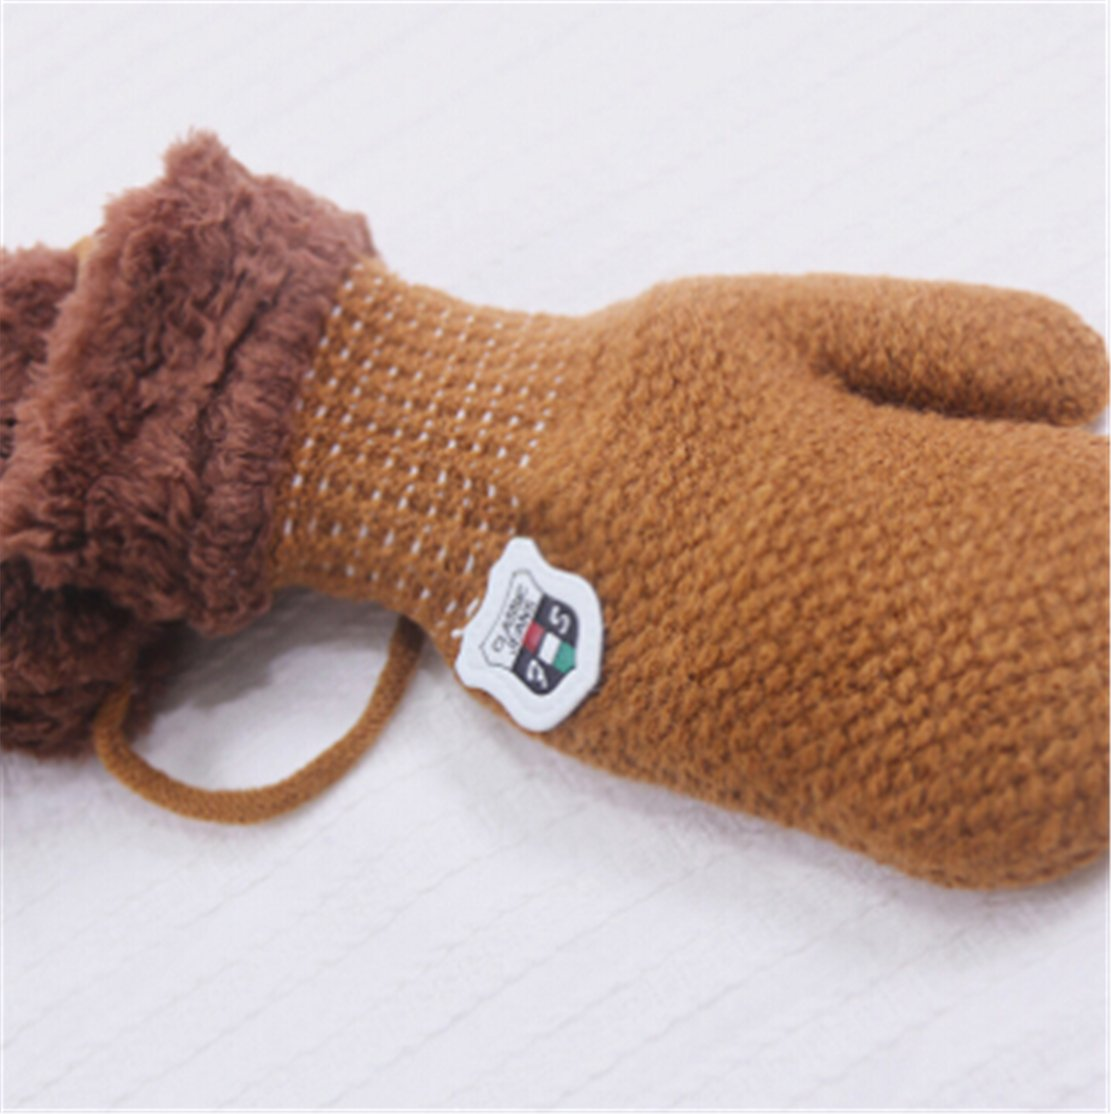 SUNMUCH 1 Pair Winter Baby Cute Thick Gloves Mittens with String (0-12 Months)